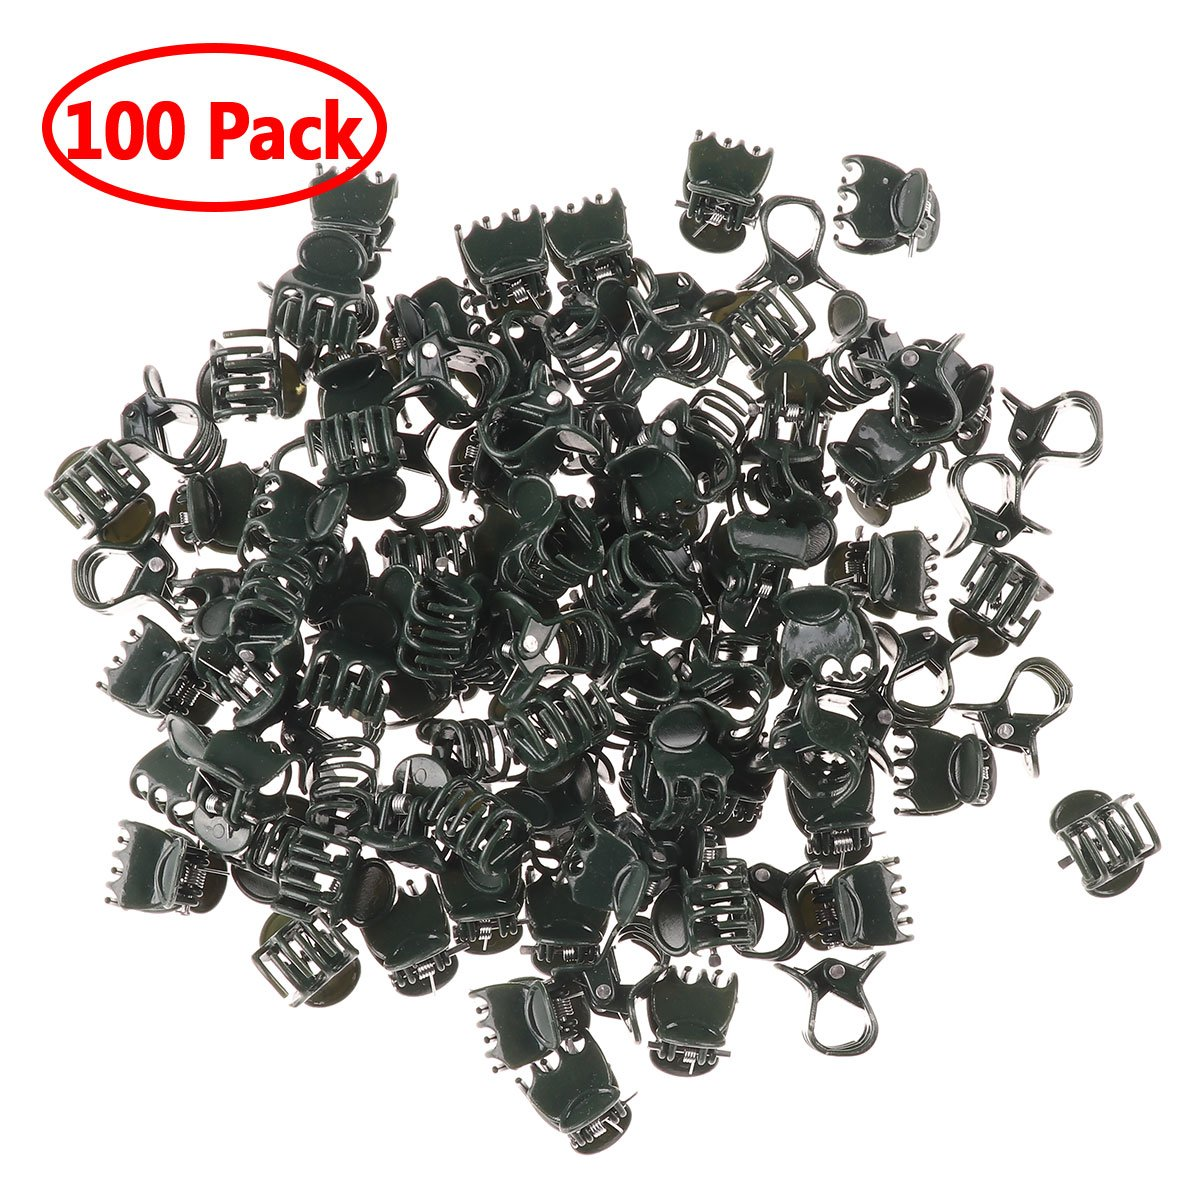 iiniim 100pcs Plant Support Clips Garden Clips Flower Orchid Stem Clips for Orchid Support YD-10056010-UK